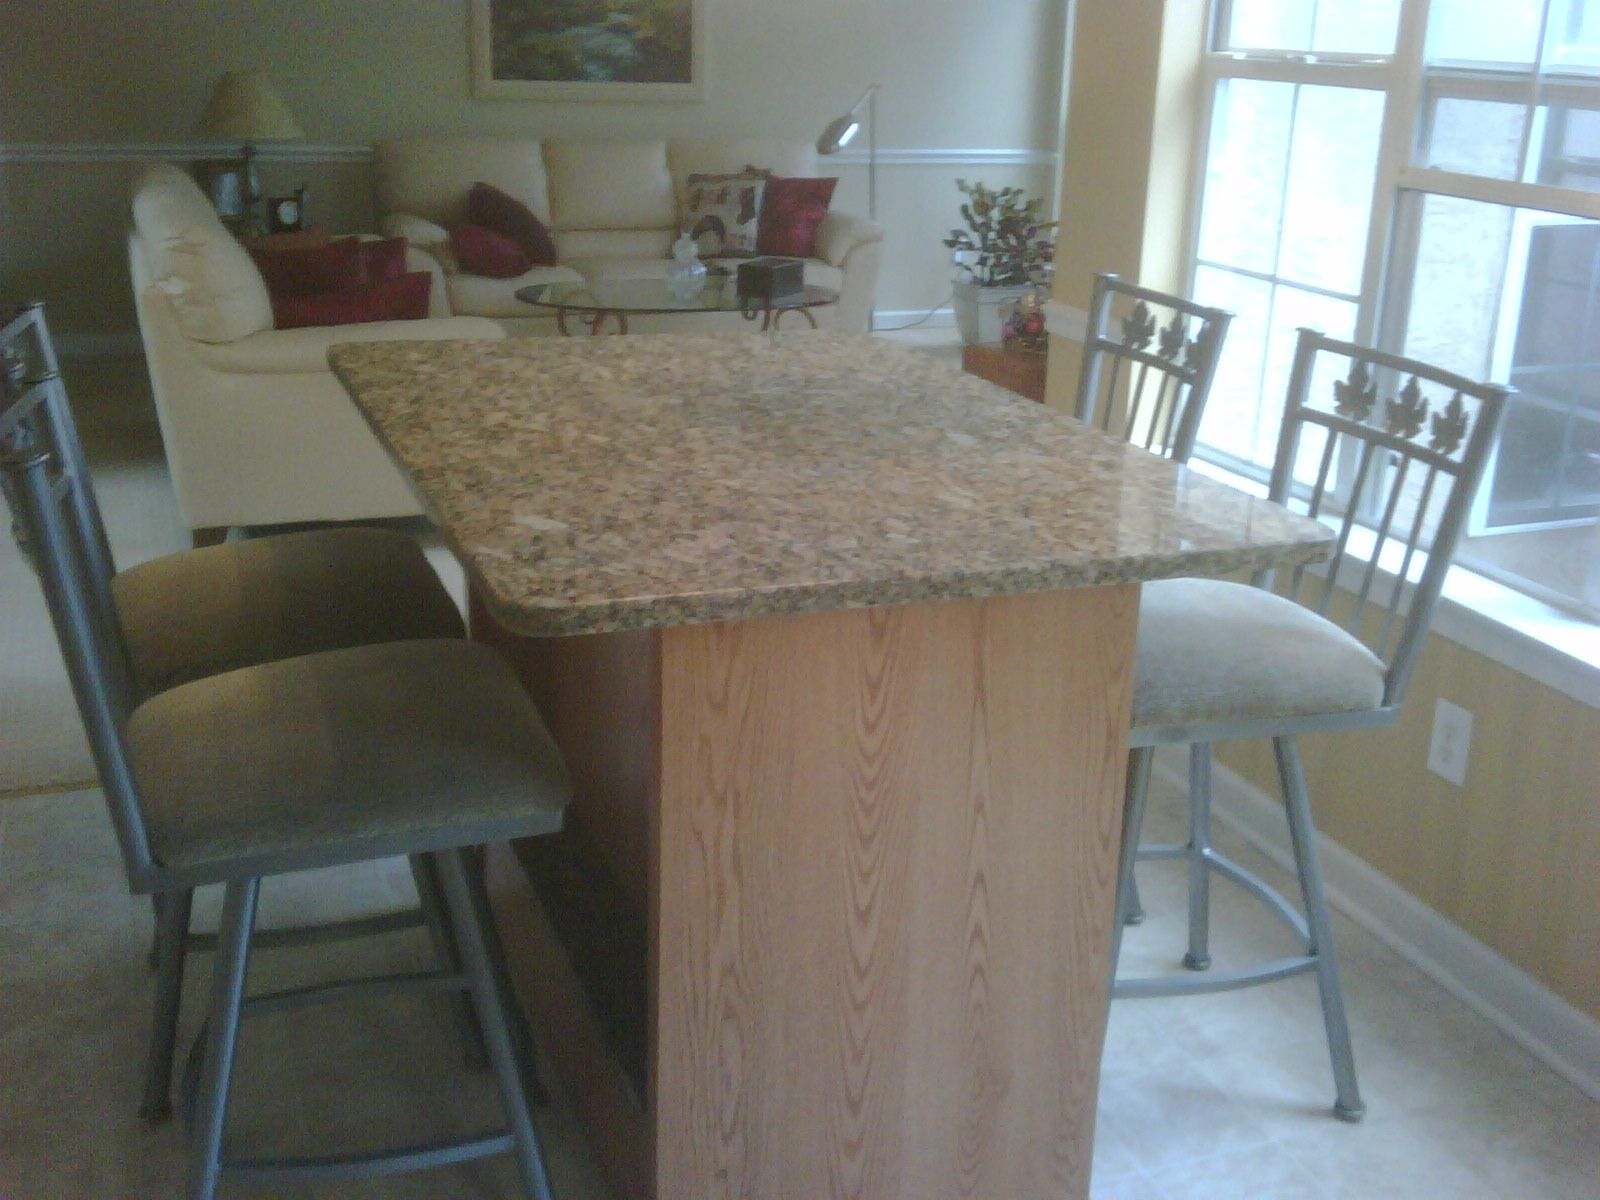 Buy a custom made kitchen table oak and granite made to order from custom made kitchen table oak and granite watchthetrailerfo